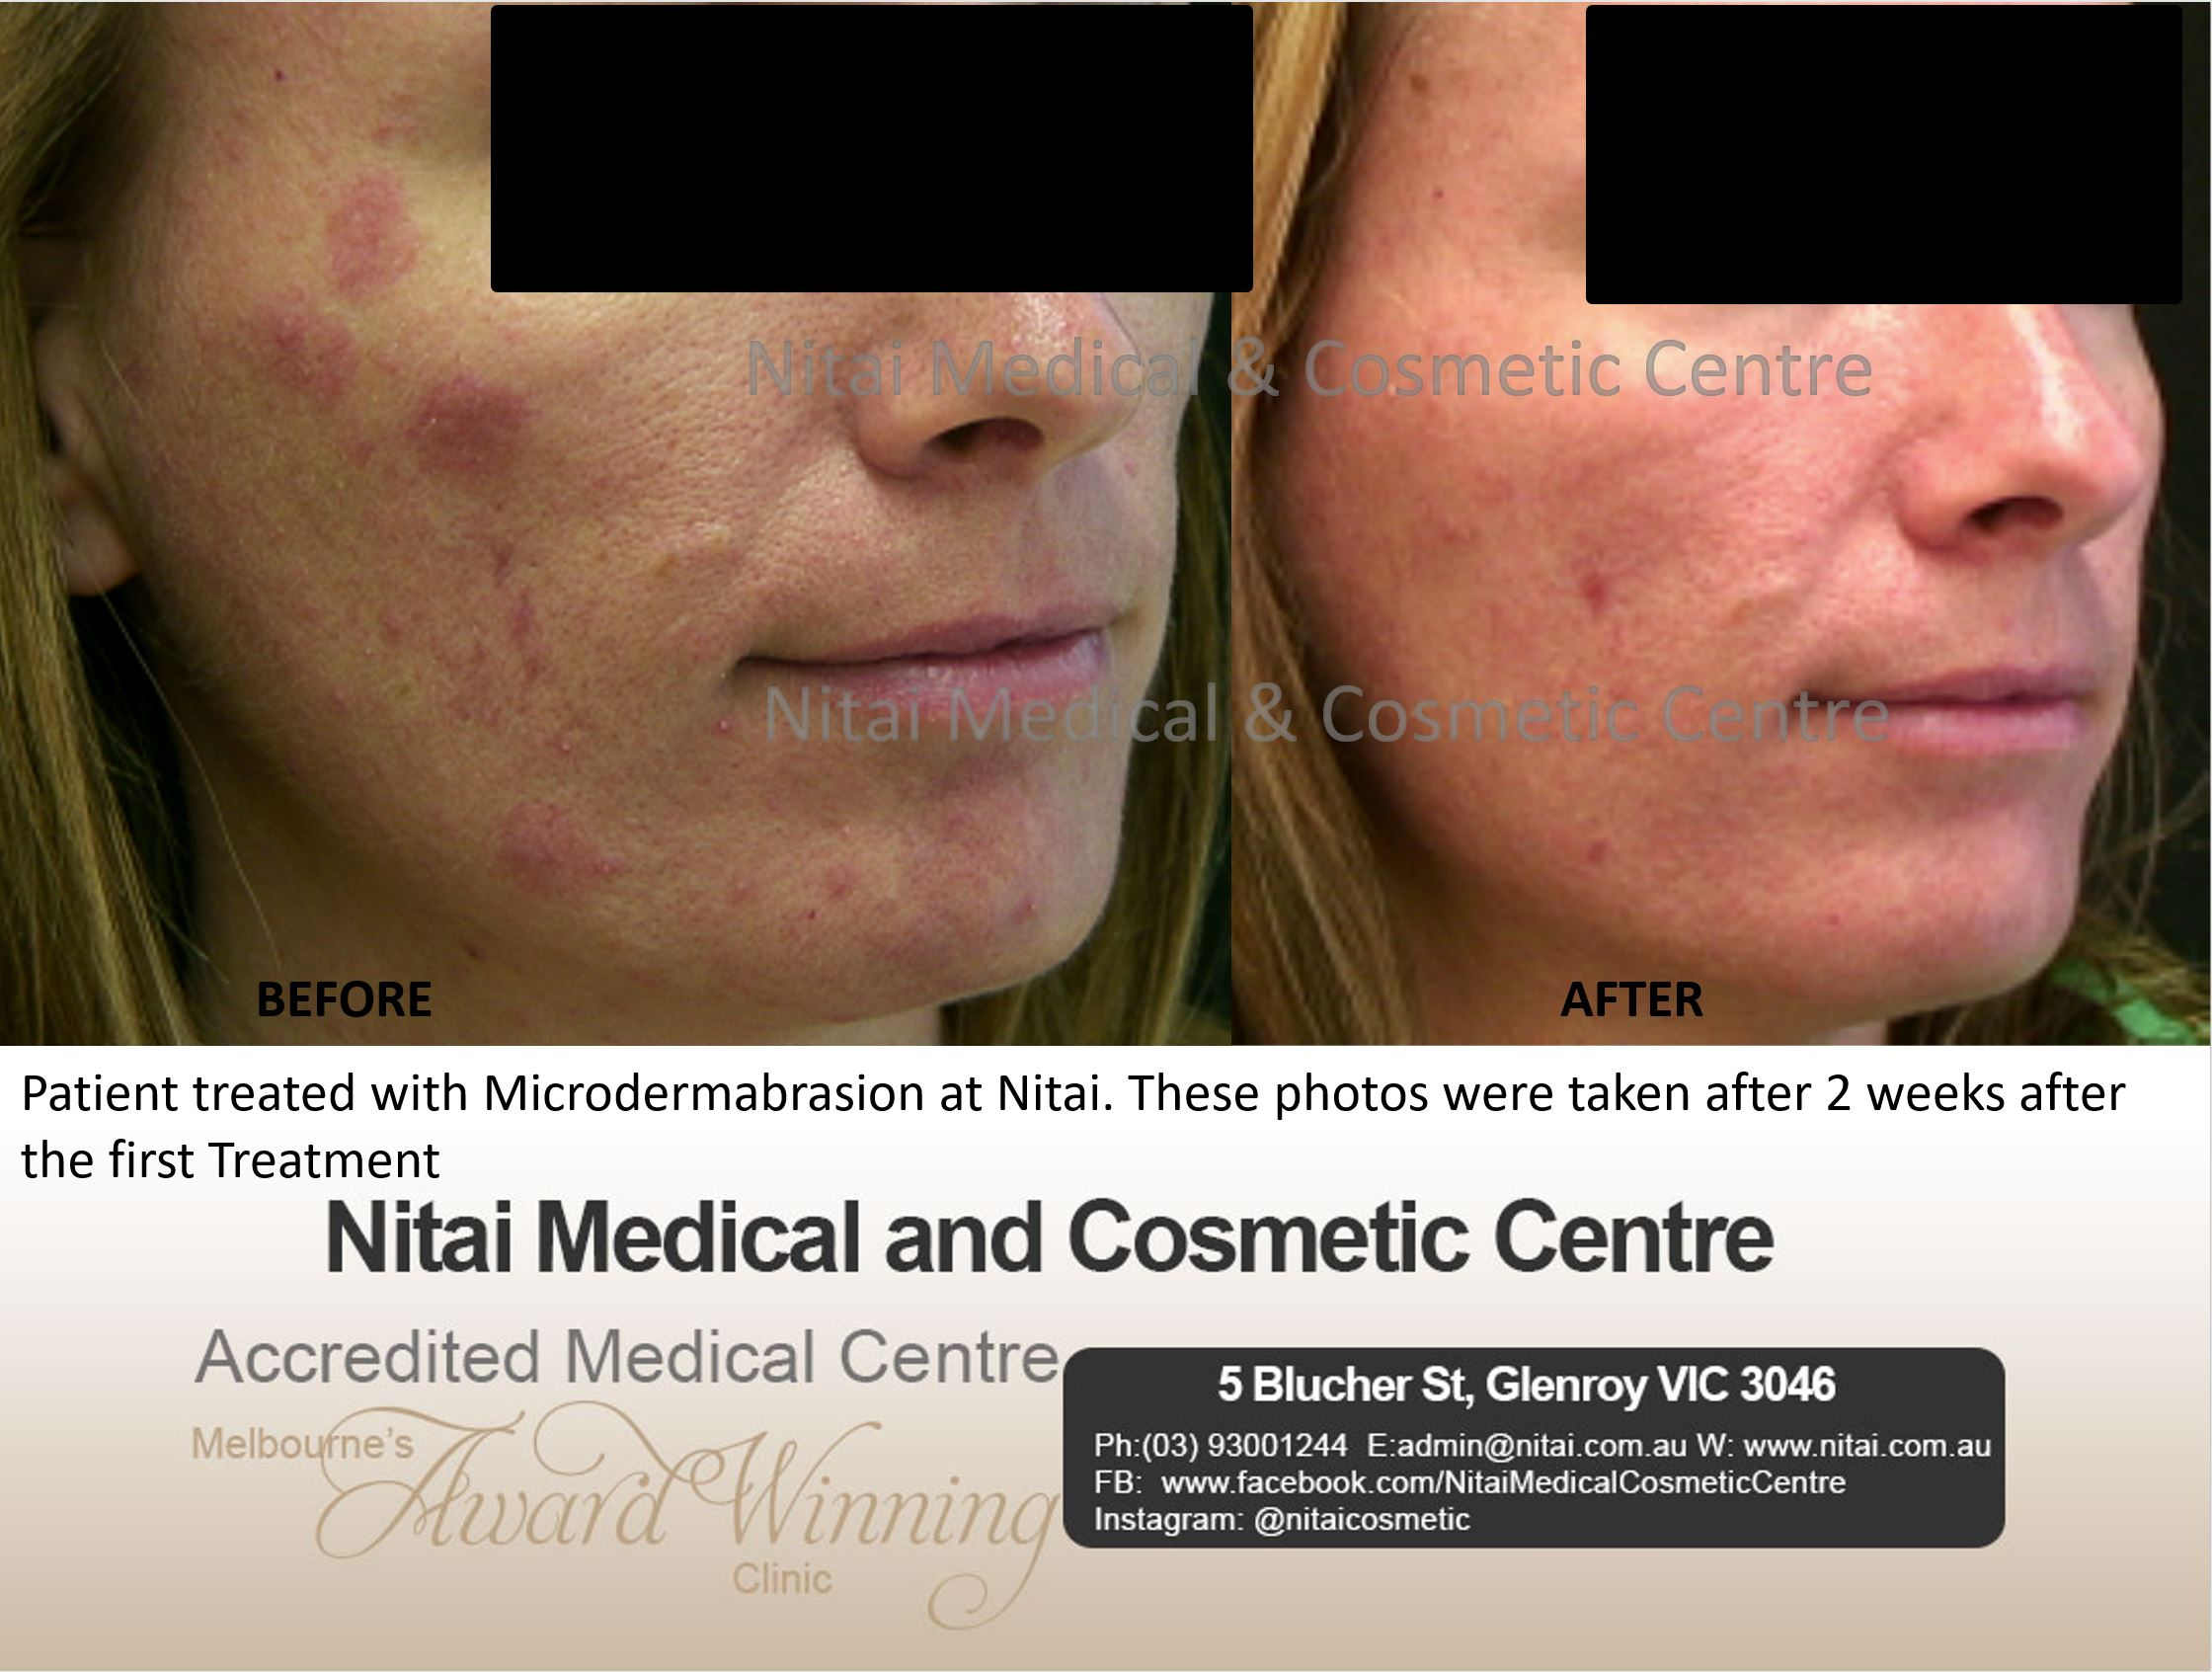 Microdermabrasion For Acne Treatment - Nitai Medical & Cosmetic Centre